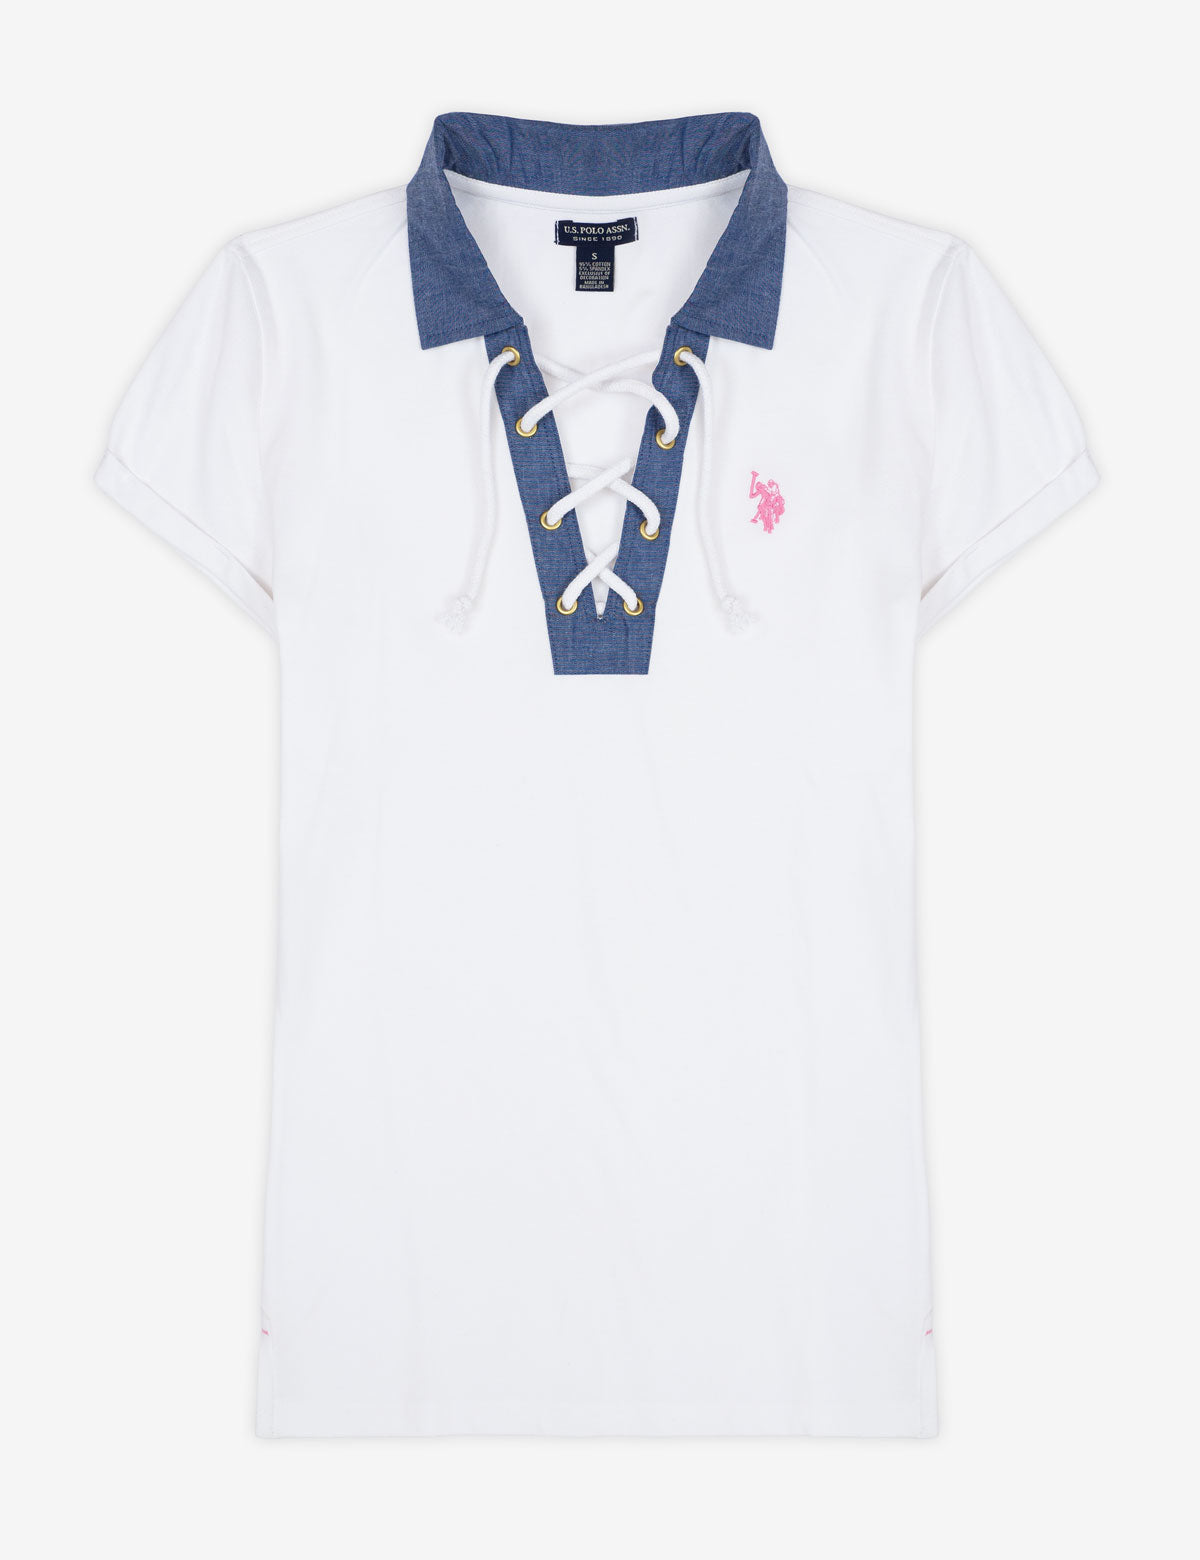 CHAMBRAY COLLAR LACE UP POLO SHIRT - U.S. Polo Assn.